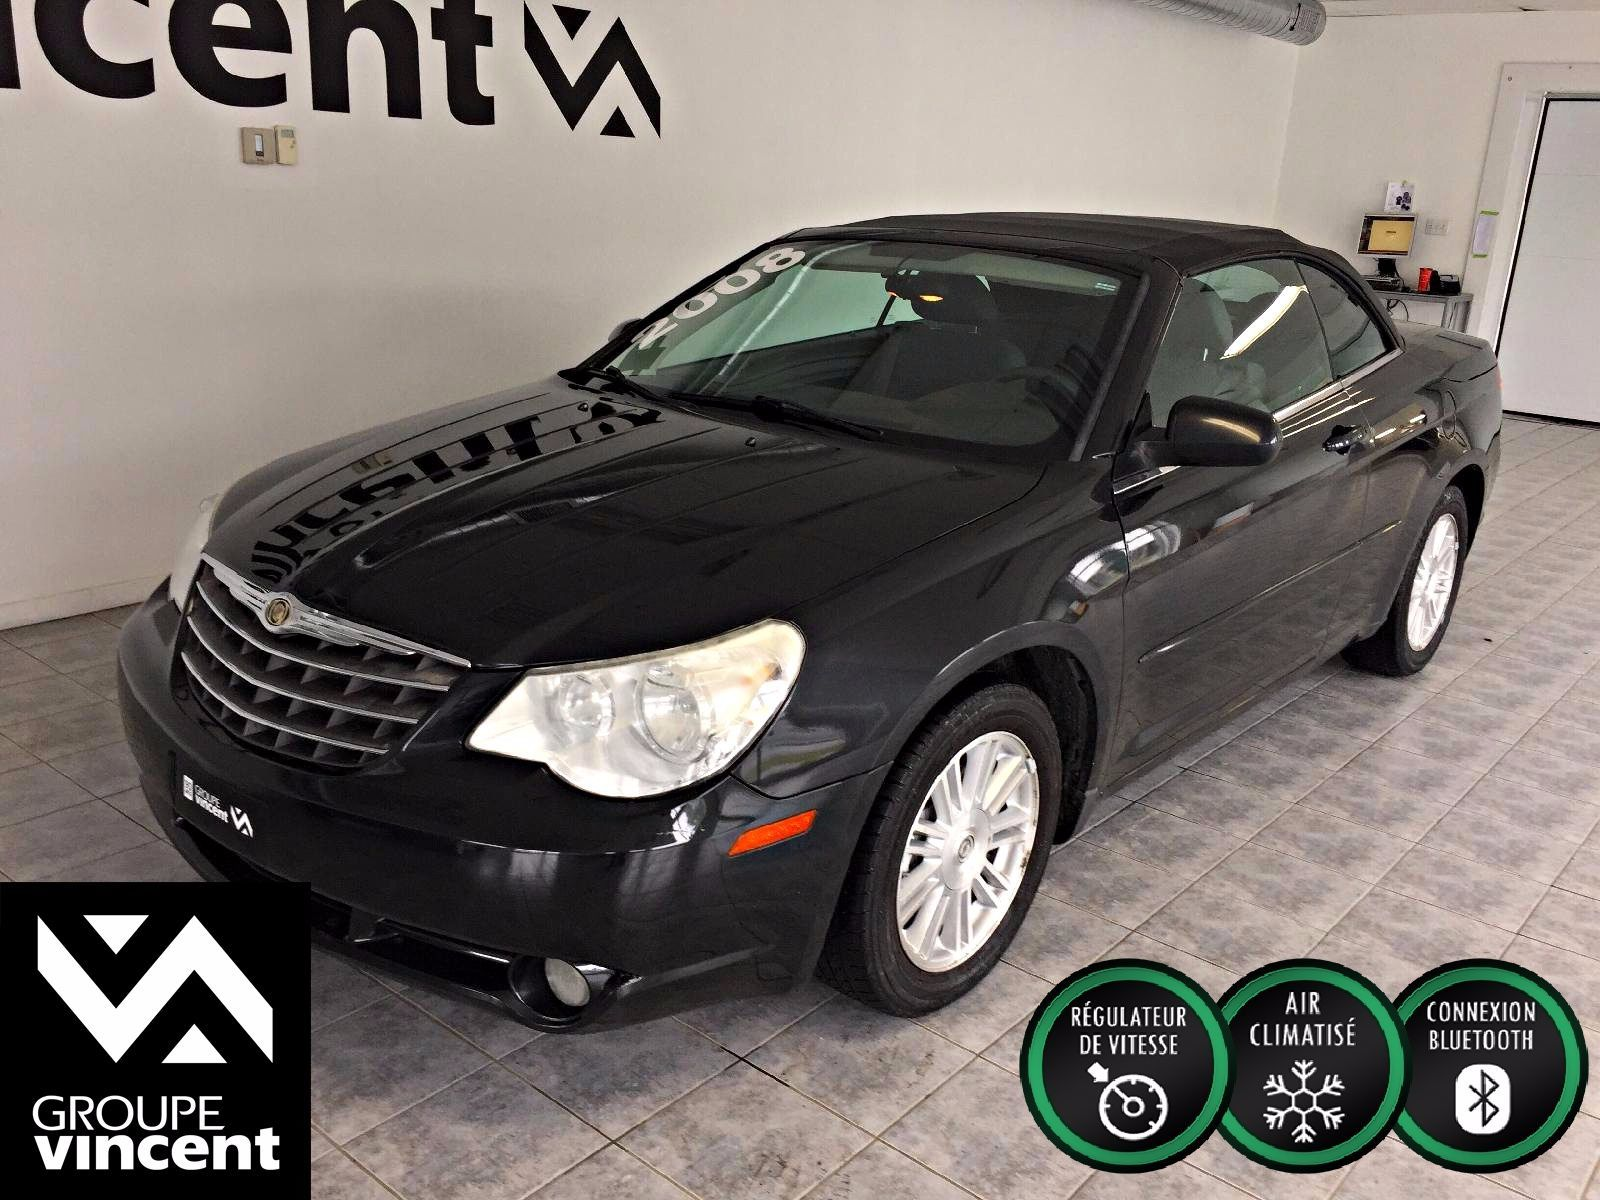 chrysler sebring touring convertible 2008 d 39 occasion trois rivi res hyundai trois rivi res. Black Bedroom Furniture Sets. Home Design Ideas